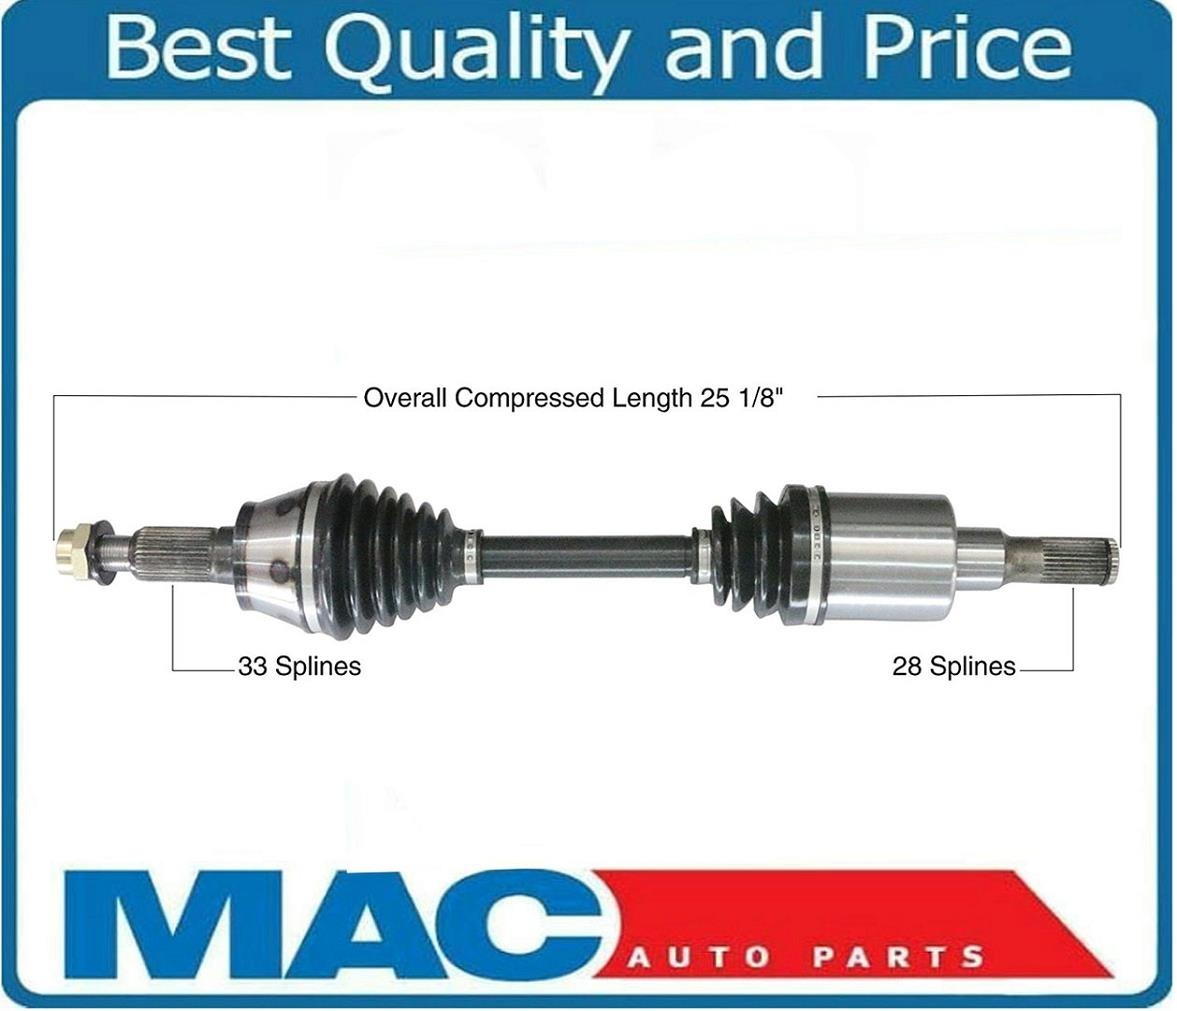 H3T 2006-10 Front Left or Right New CV Drive Axle Shaft Fits Hummer H3